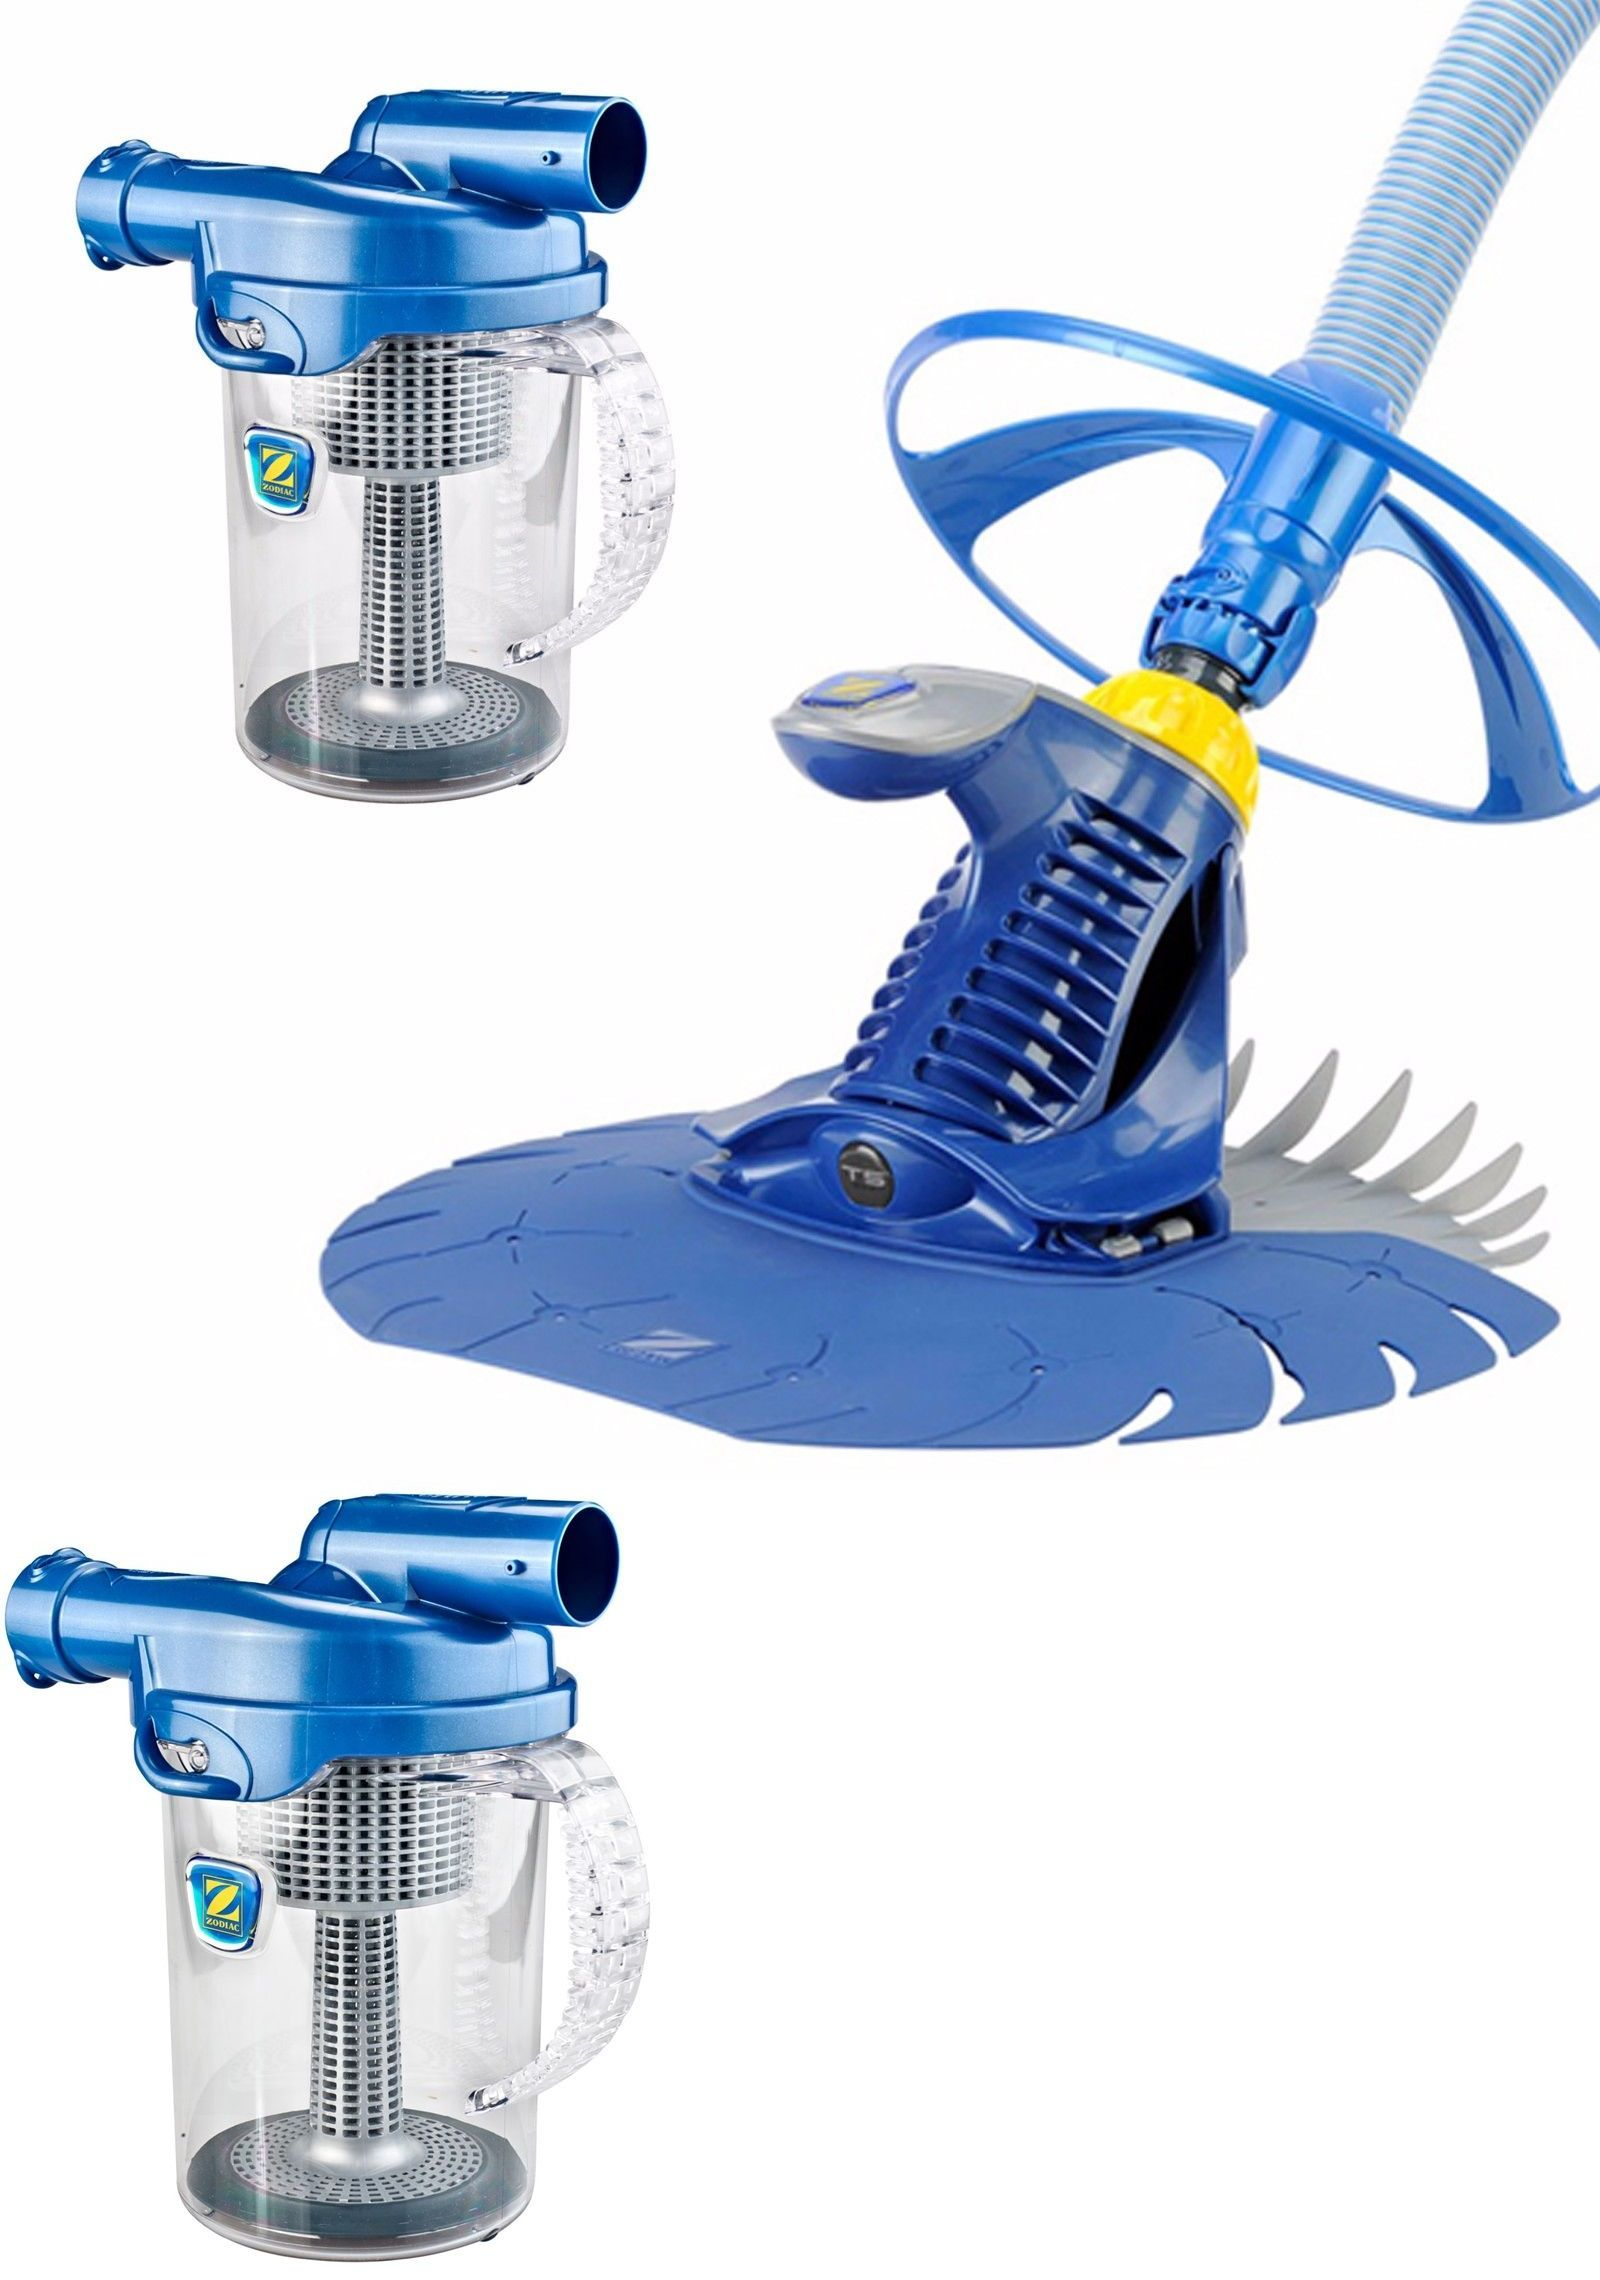 Zodiac T5 Duo Suction Side In Ground Swimming Pool Cleaner With Leaf Canister 52337053884 Ebay Pool Cleaning Swimming Pool Cleaners Swimming Pools